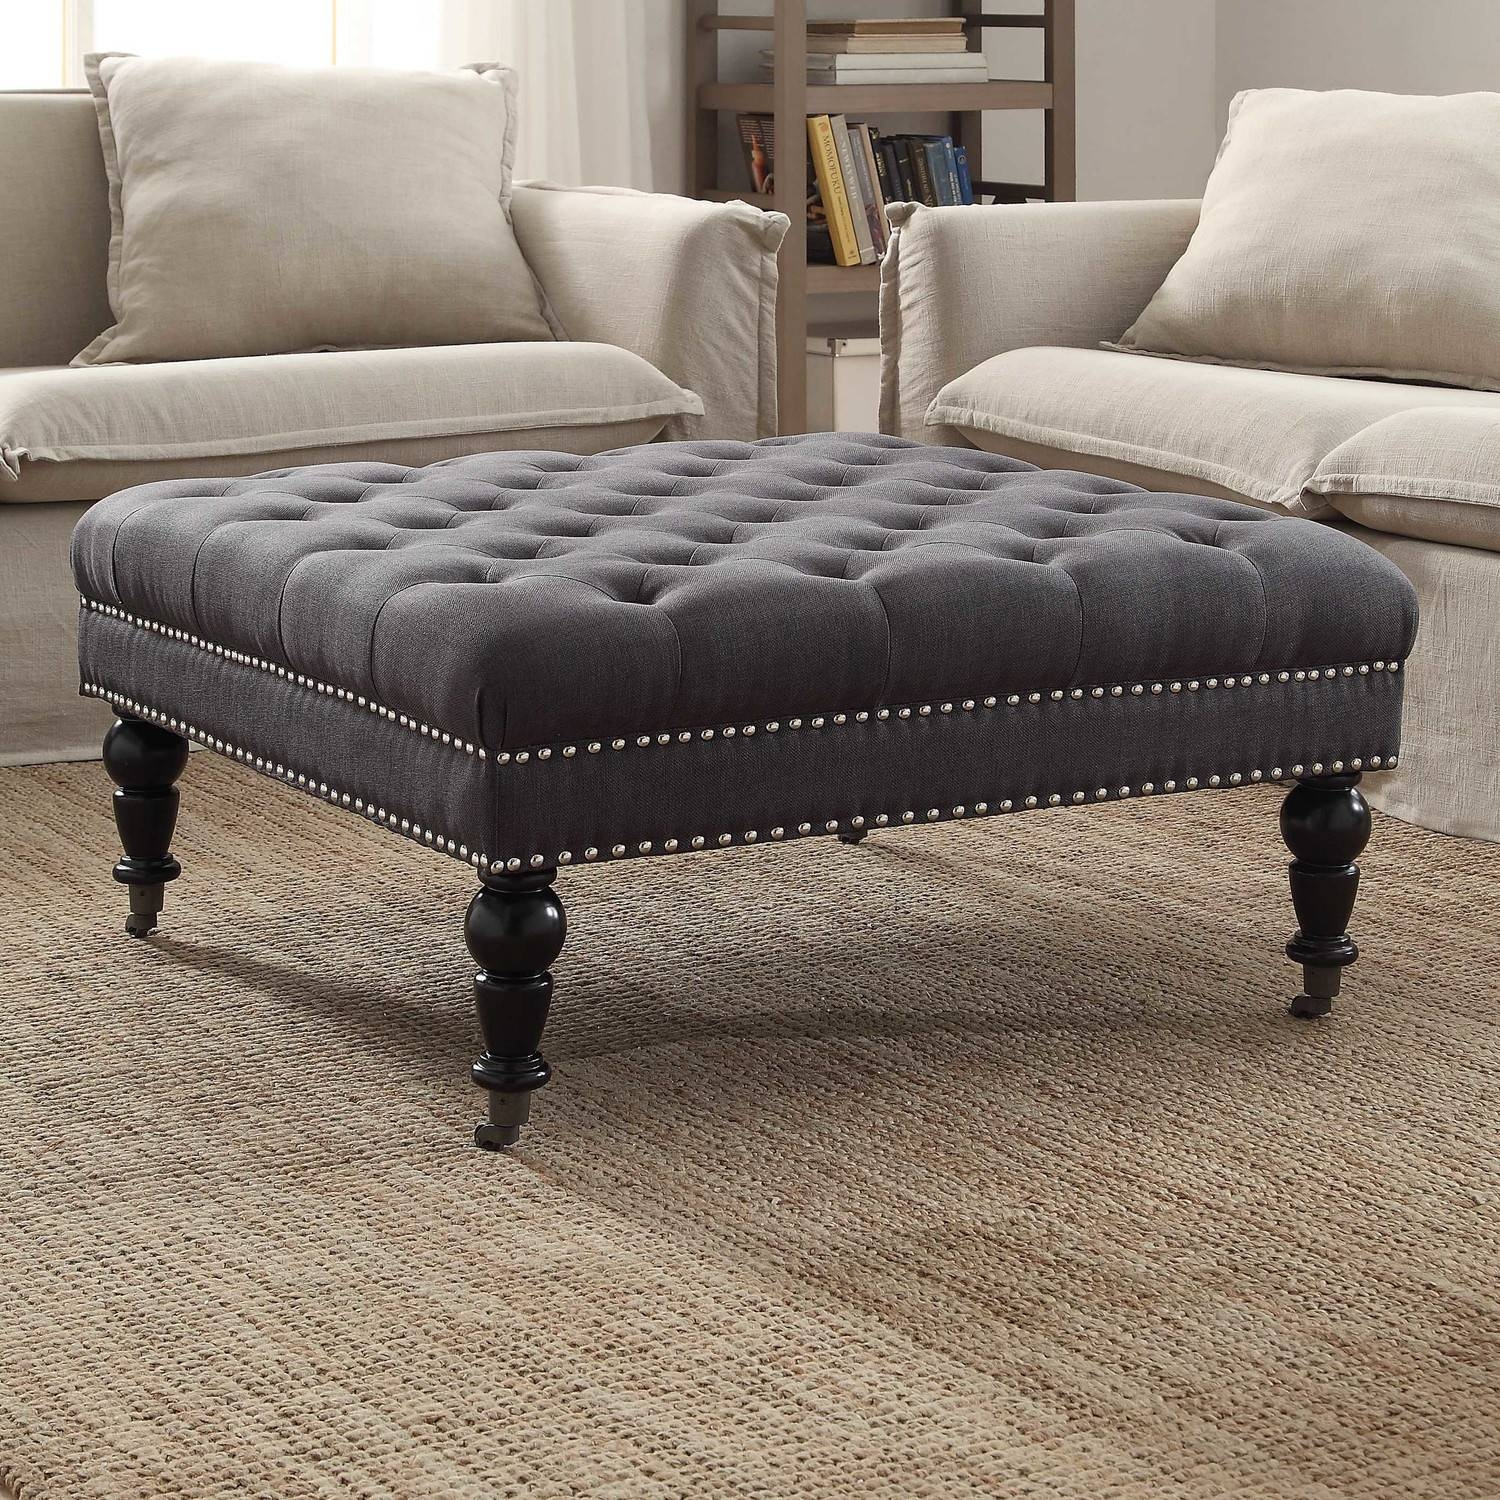 Furniture: Nice Oversized Ottoman For Living Room Furniture Idea throughout Oversized Round Coffee Tables (Image 14 of 30)